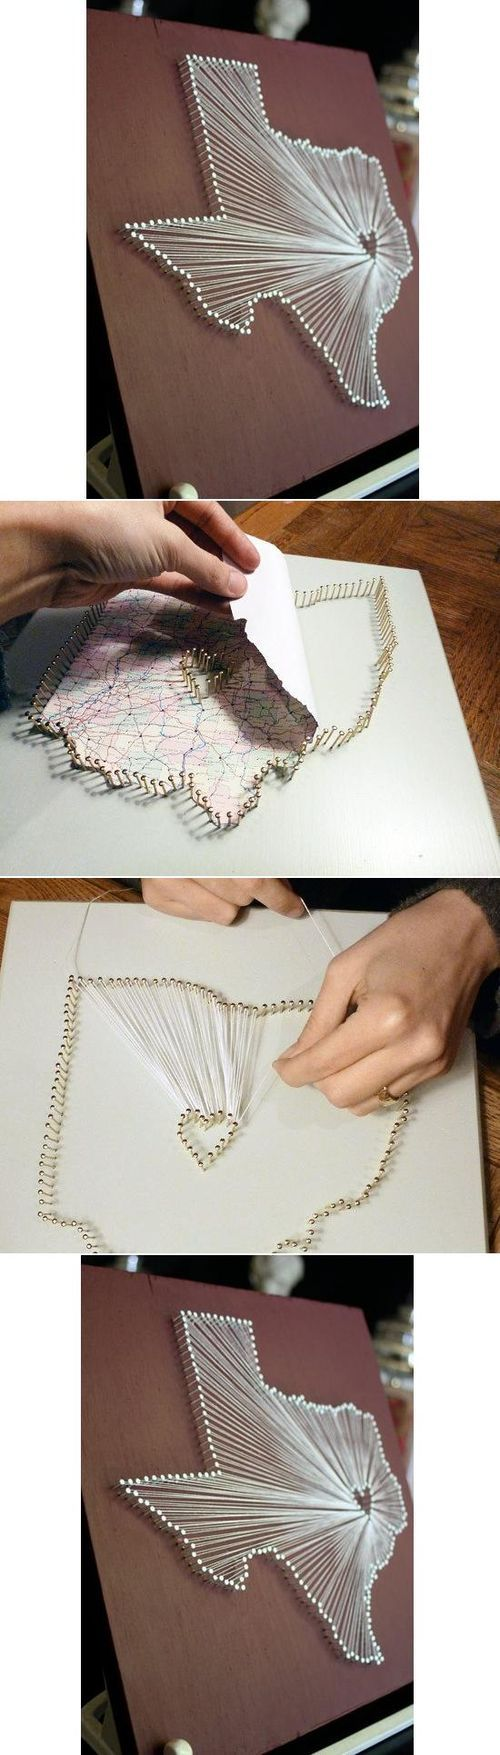 This is an awesomely easy DIY project! #decor #DIY #art #project